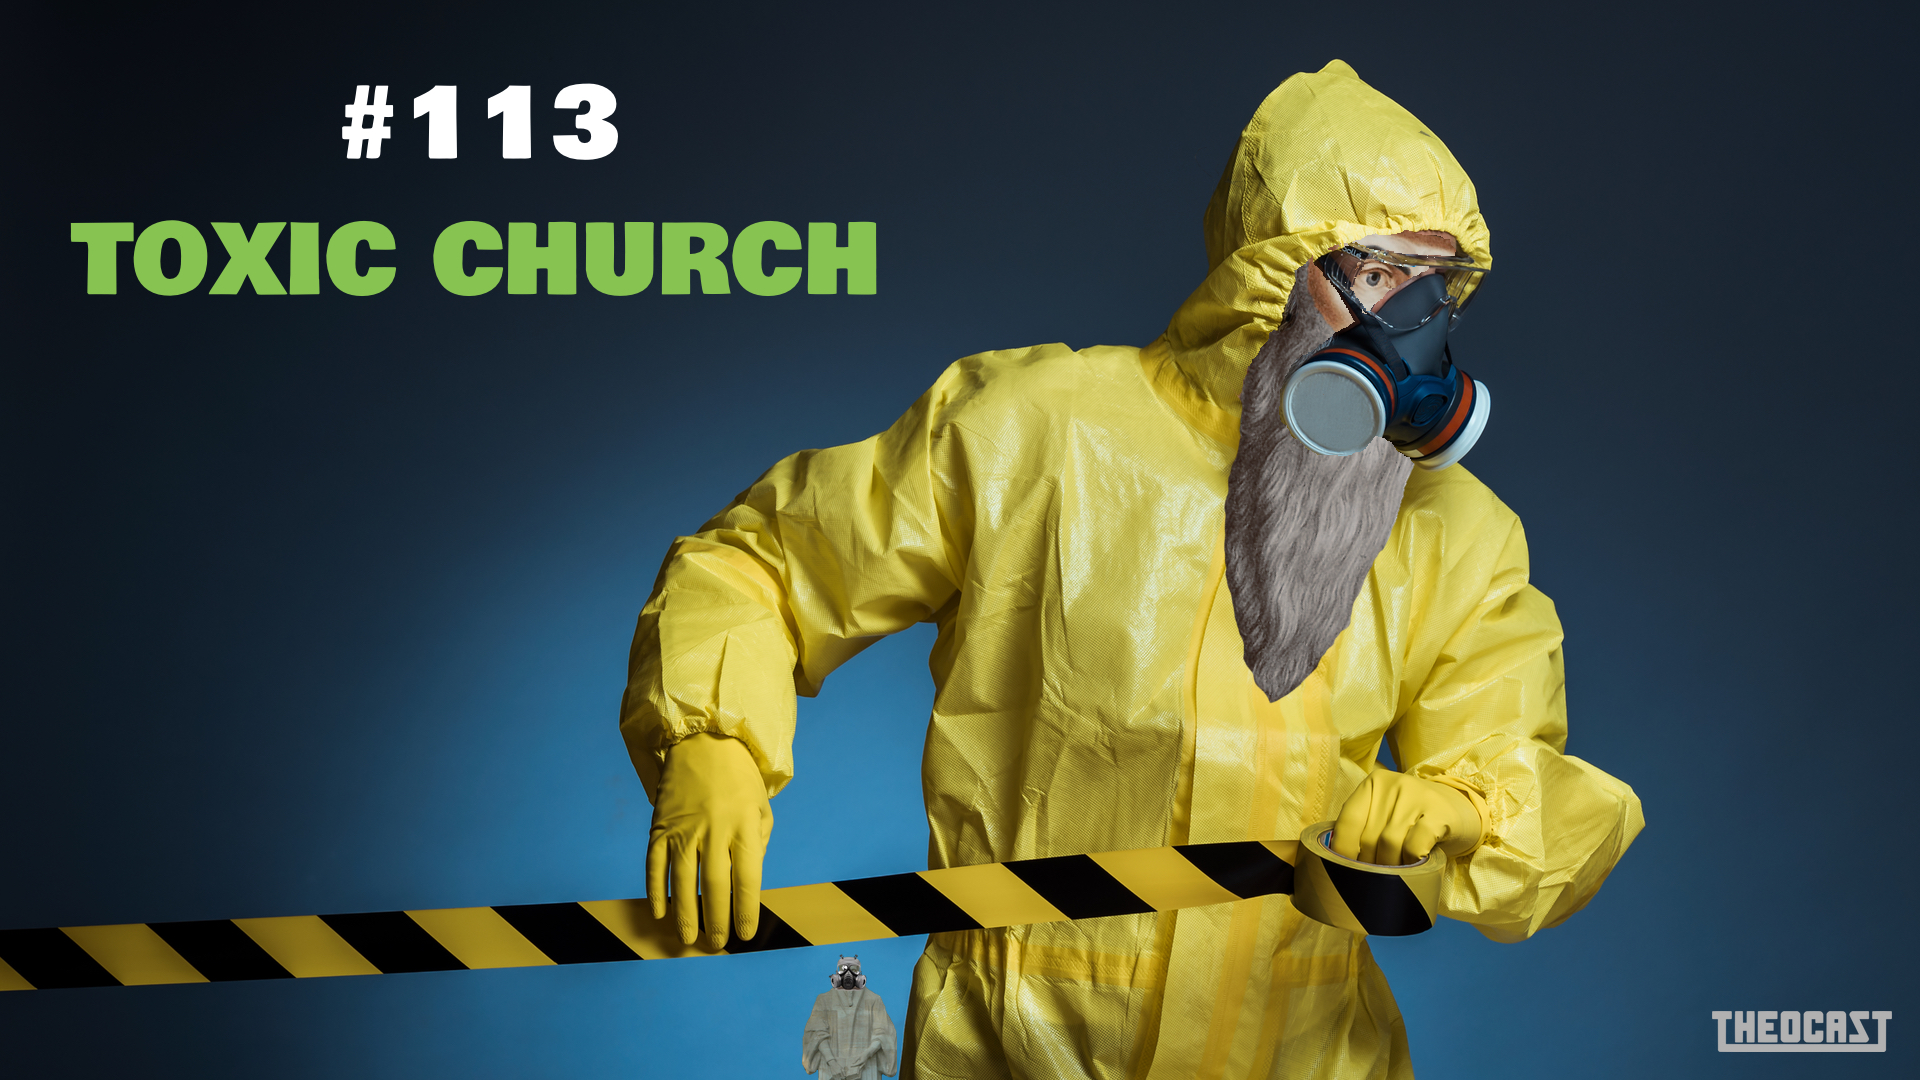 #113 Toxic Church